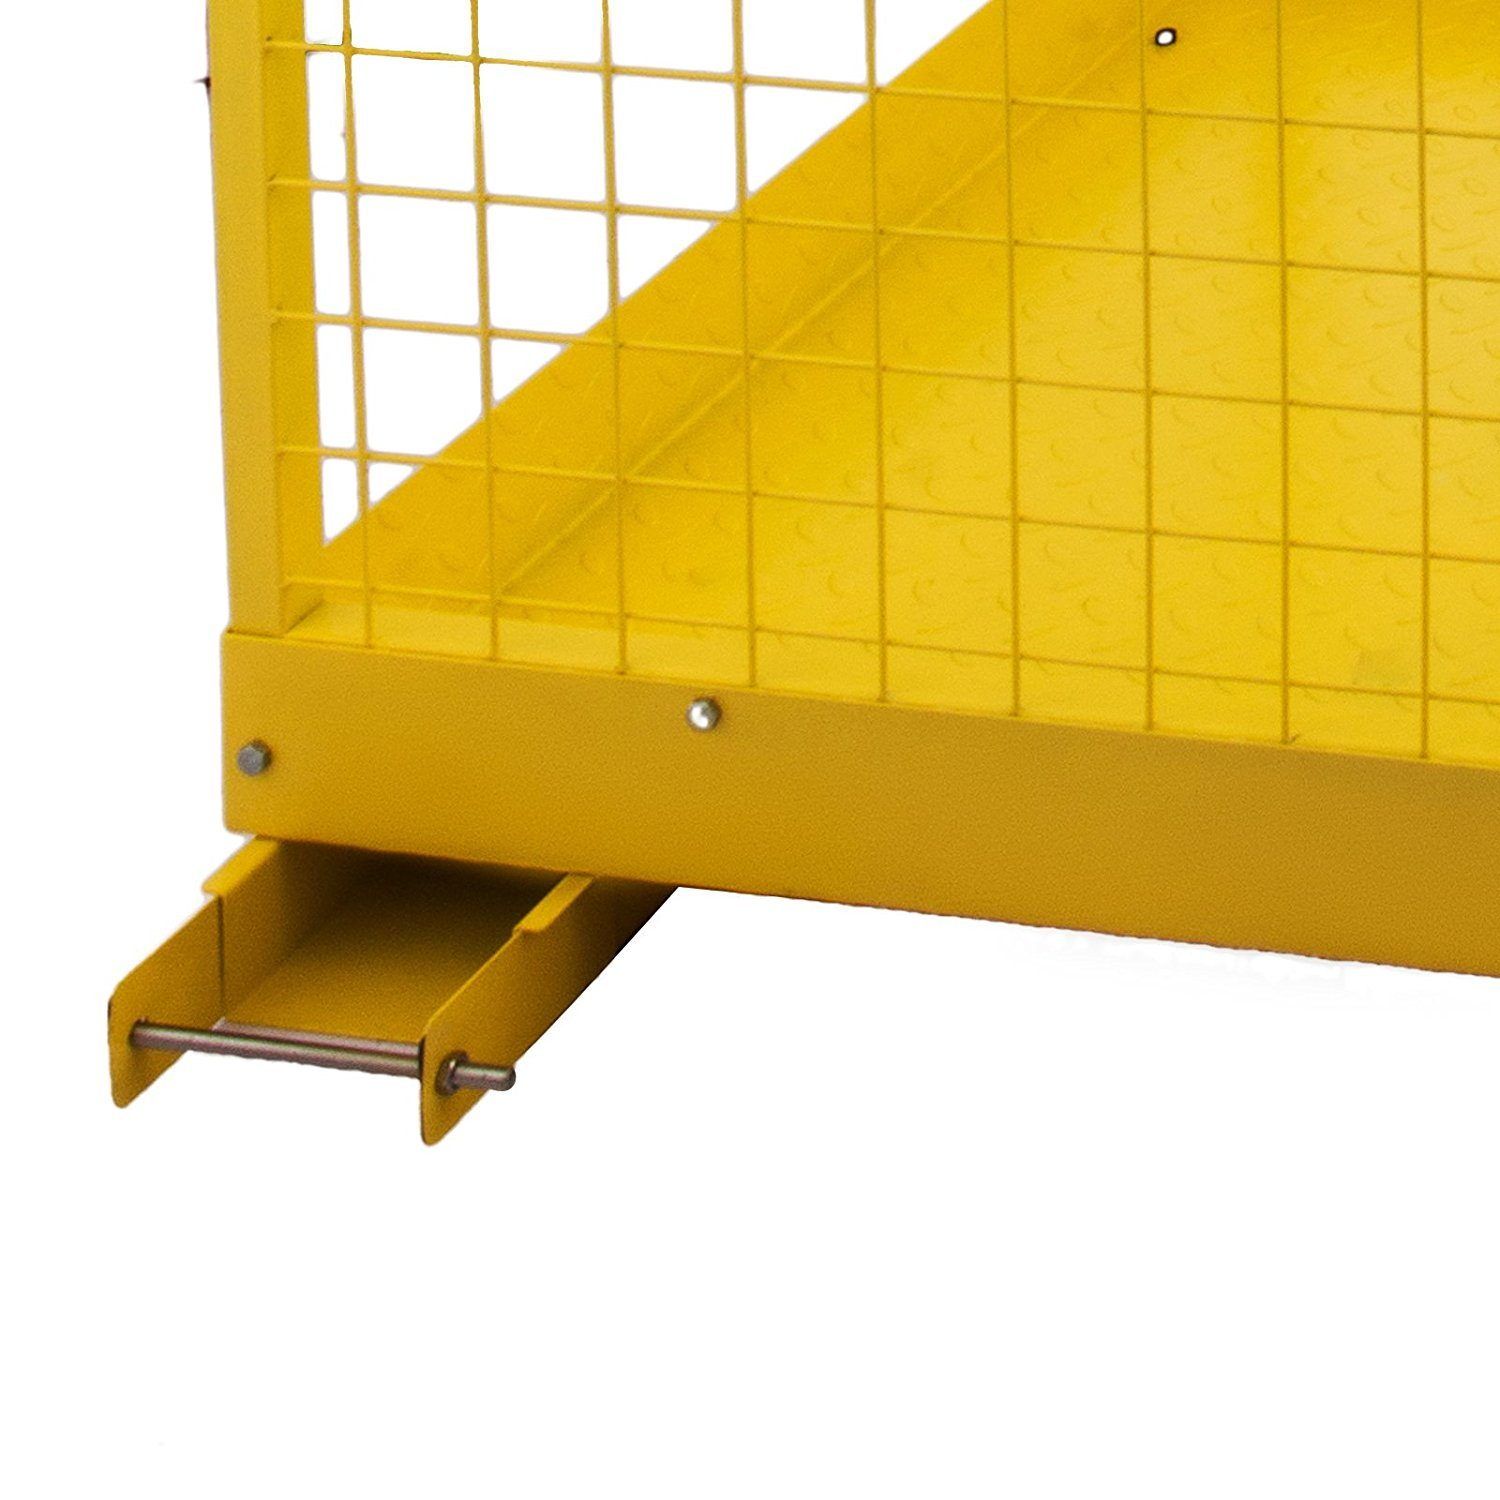 BestEquip Forklift Safety Cage 1200LBS Capacity Fold-Down Forklift Work Platform 45 x 43 Inch Powder Coat Yellow Collapsible Lift Basket Aerial Fence Rails